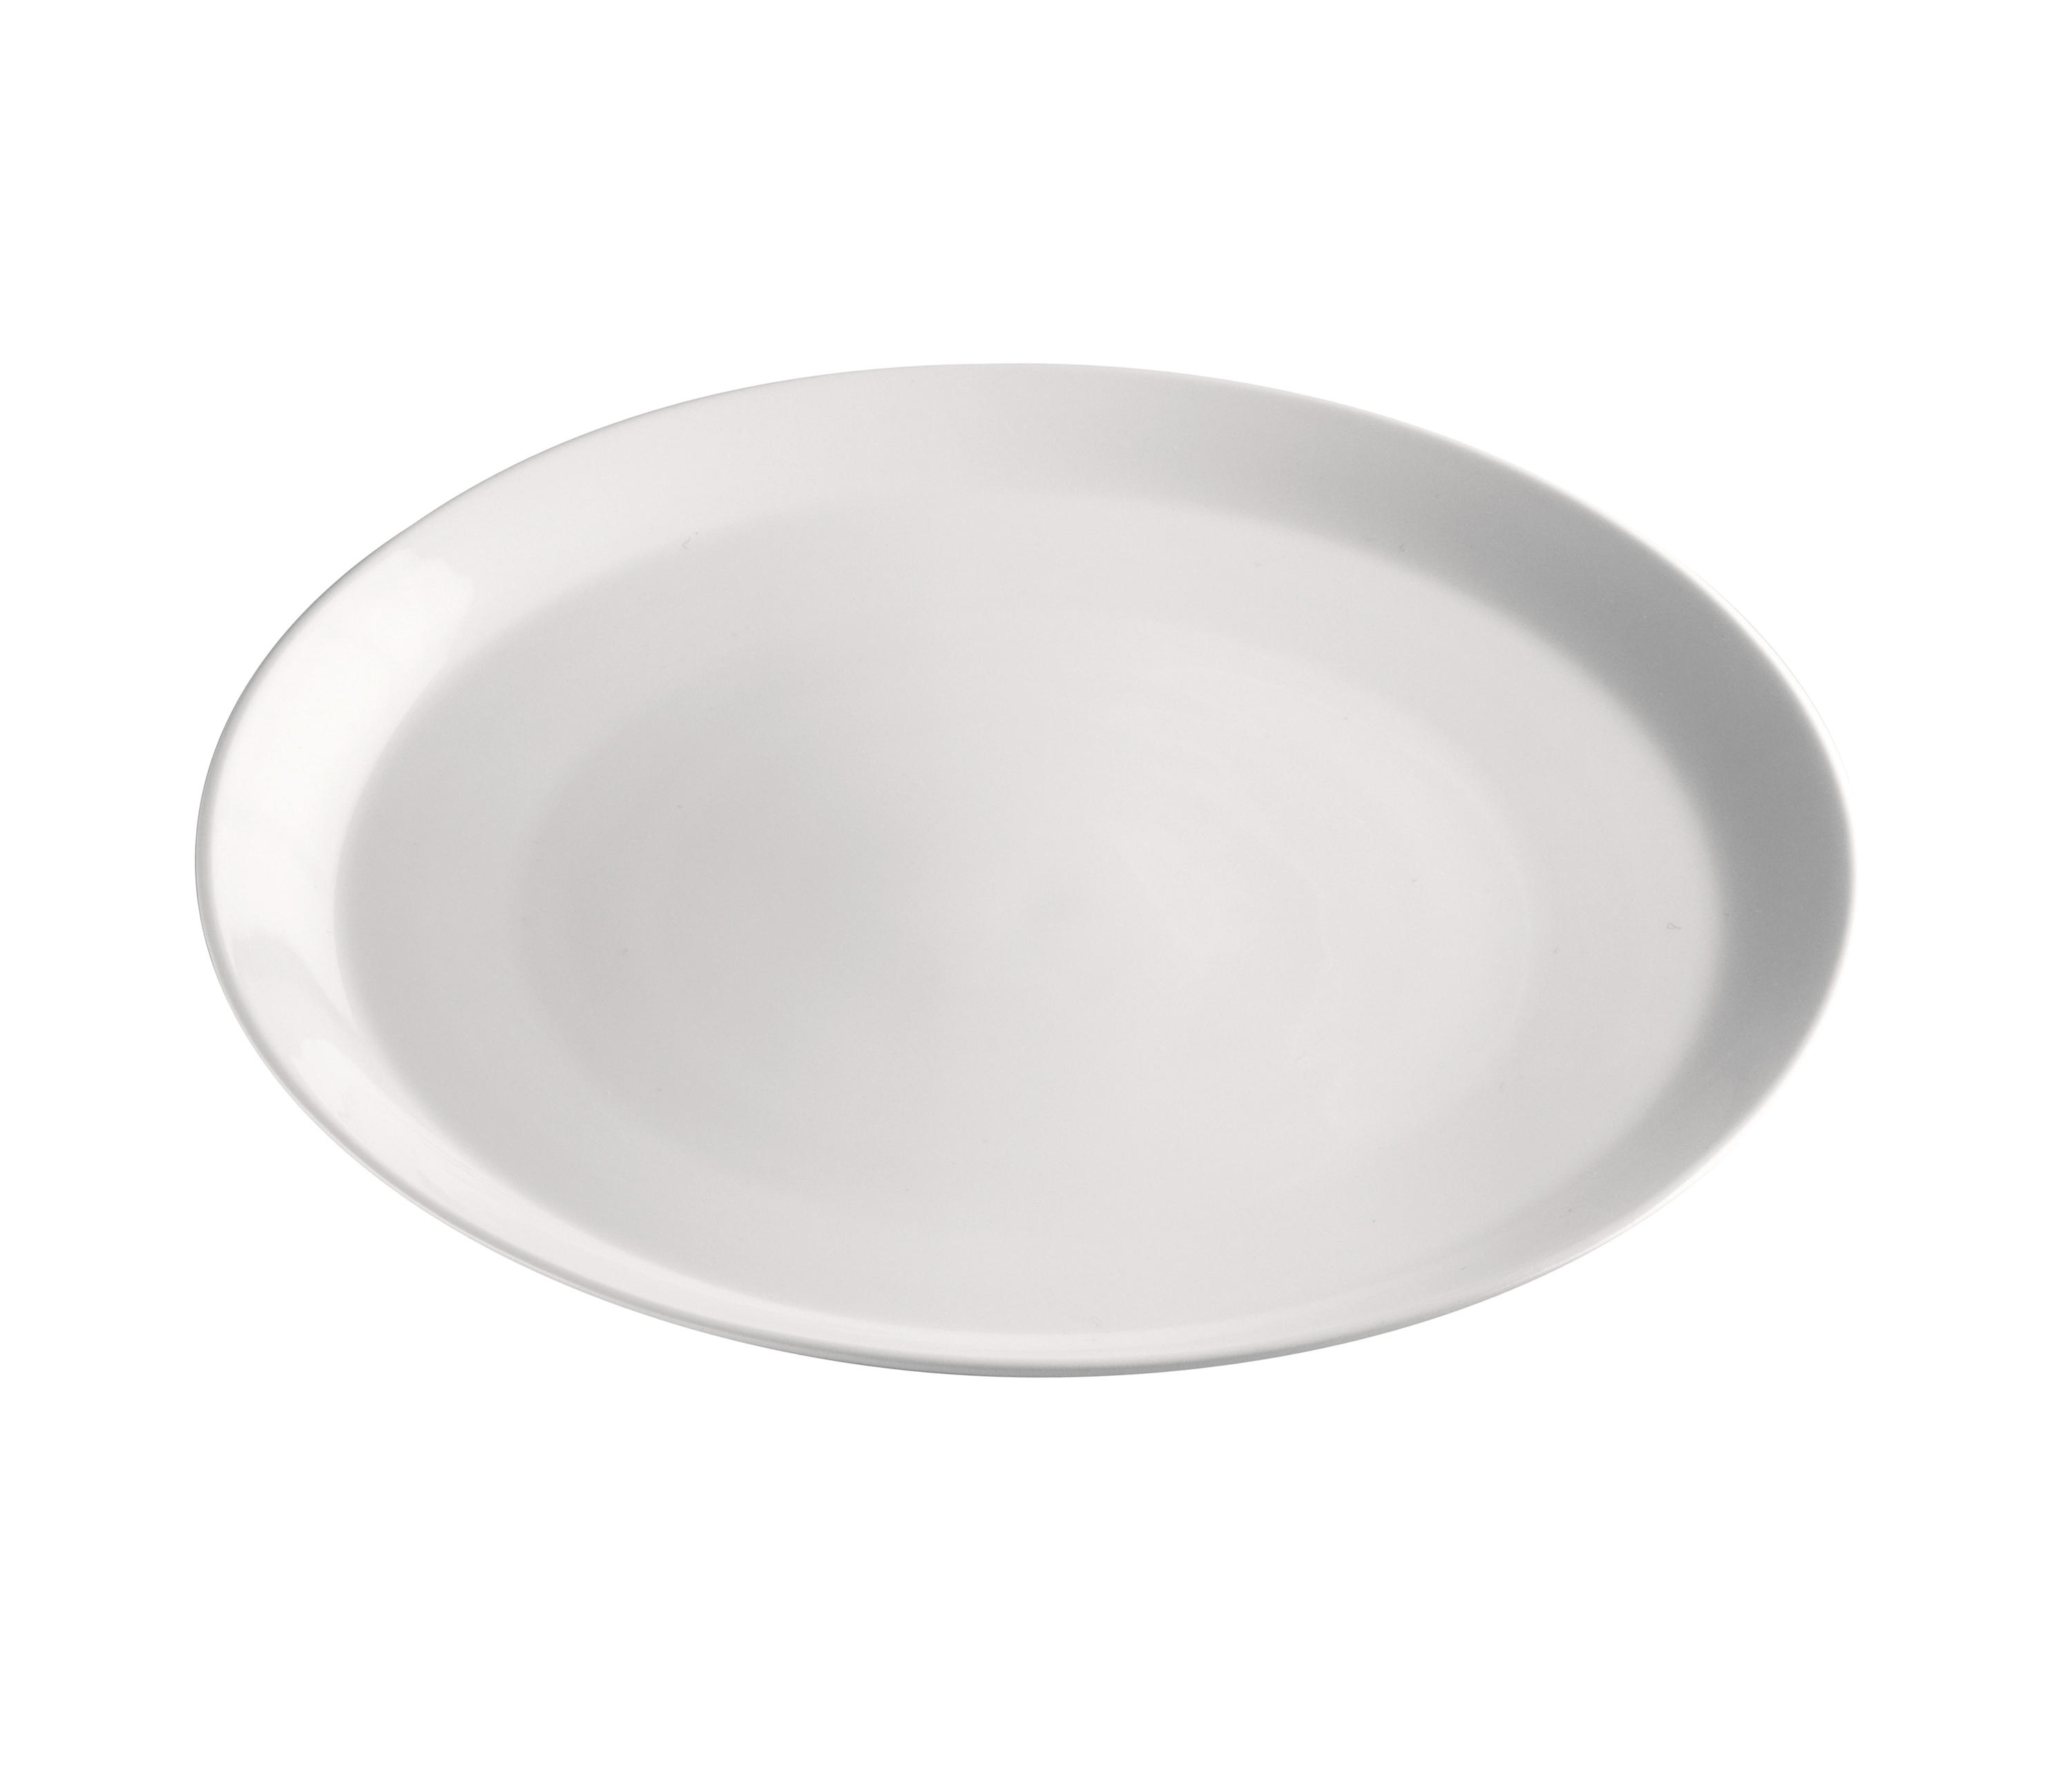 SEEFELD GESCHIRR - Dinnerware from Atelier Pfister | Architonic | {Geschirr 28}